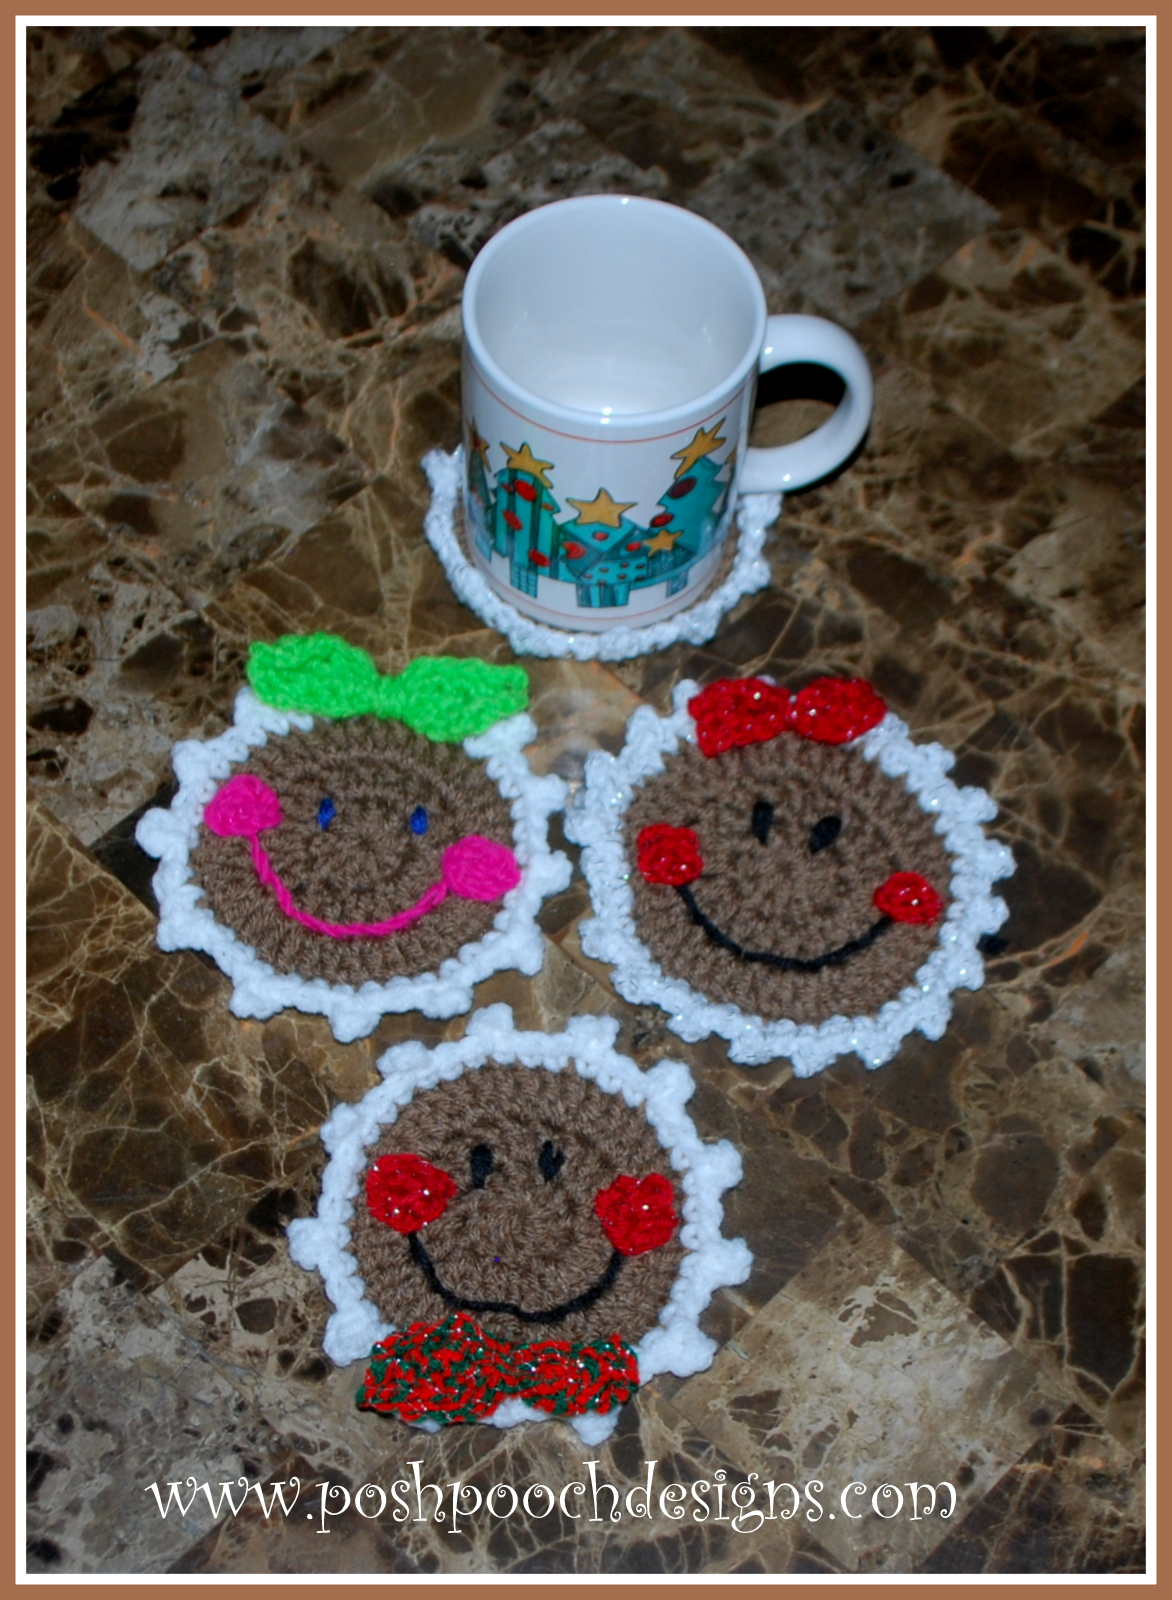 Posh Pooch Designs Dog Clothes Gingerbread Coaster Crochet Pattern